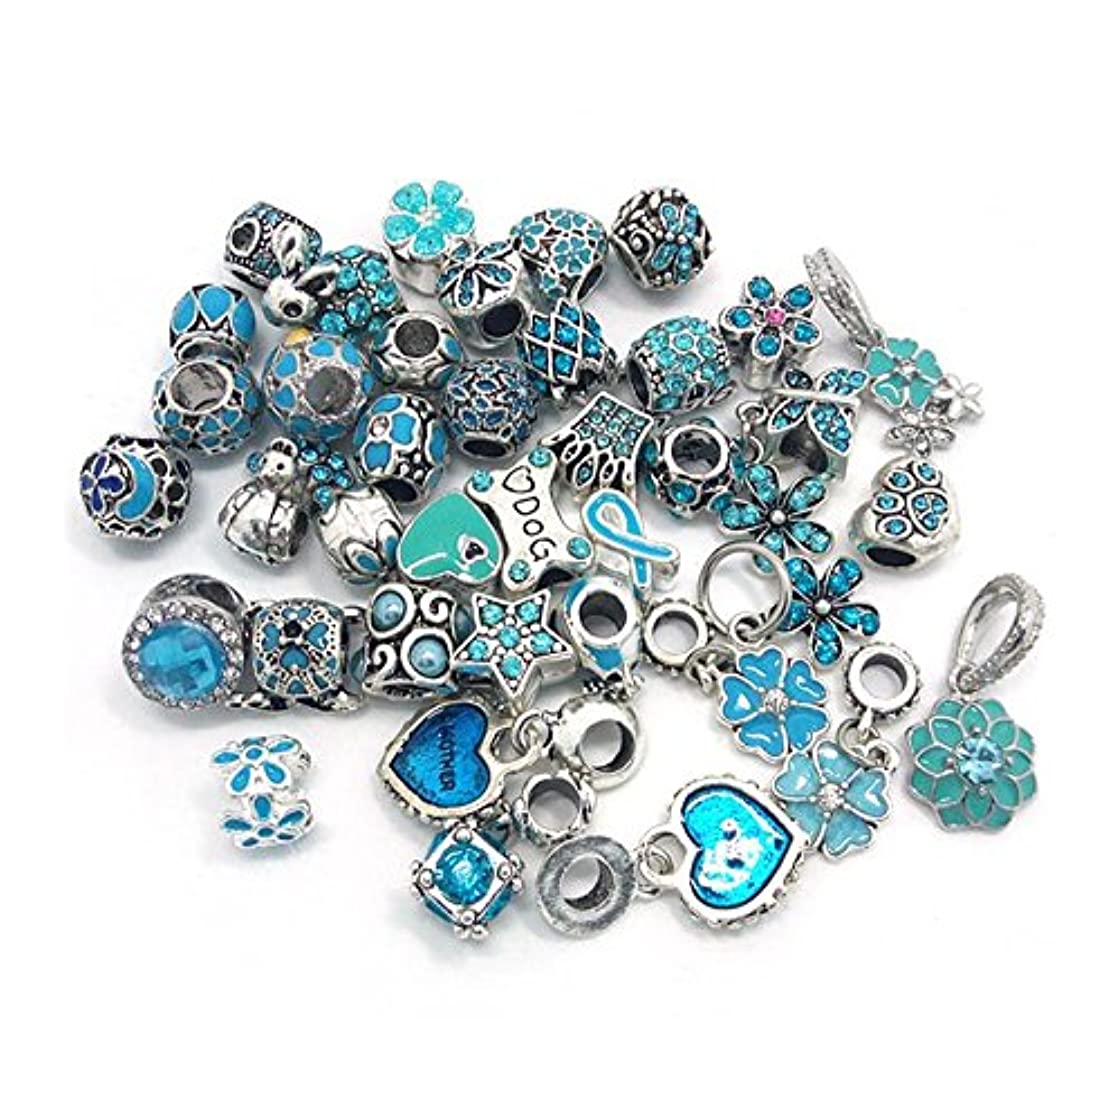 YIQIFLY 40pcs Jewelry Making Charms Rhinesotone Beads Assorted Colors and Styles Randomly (02)